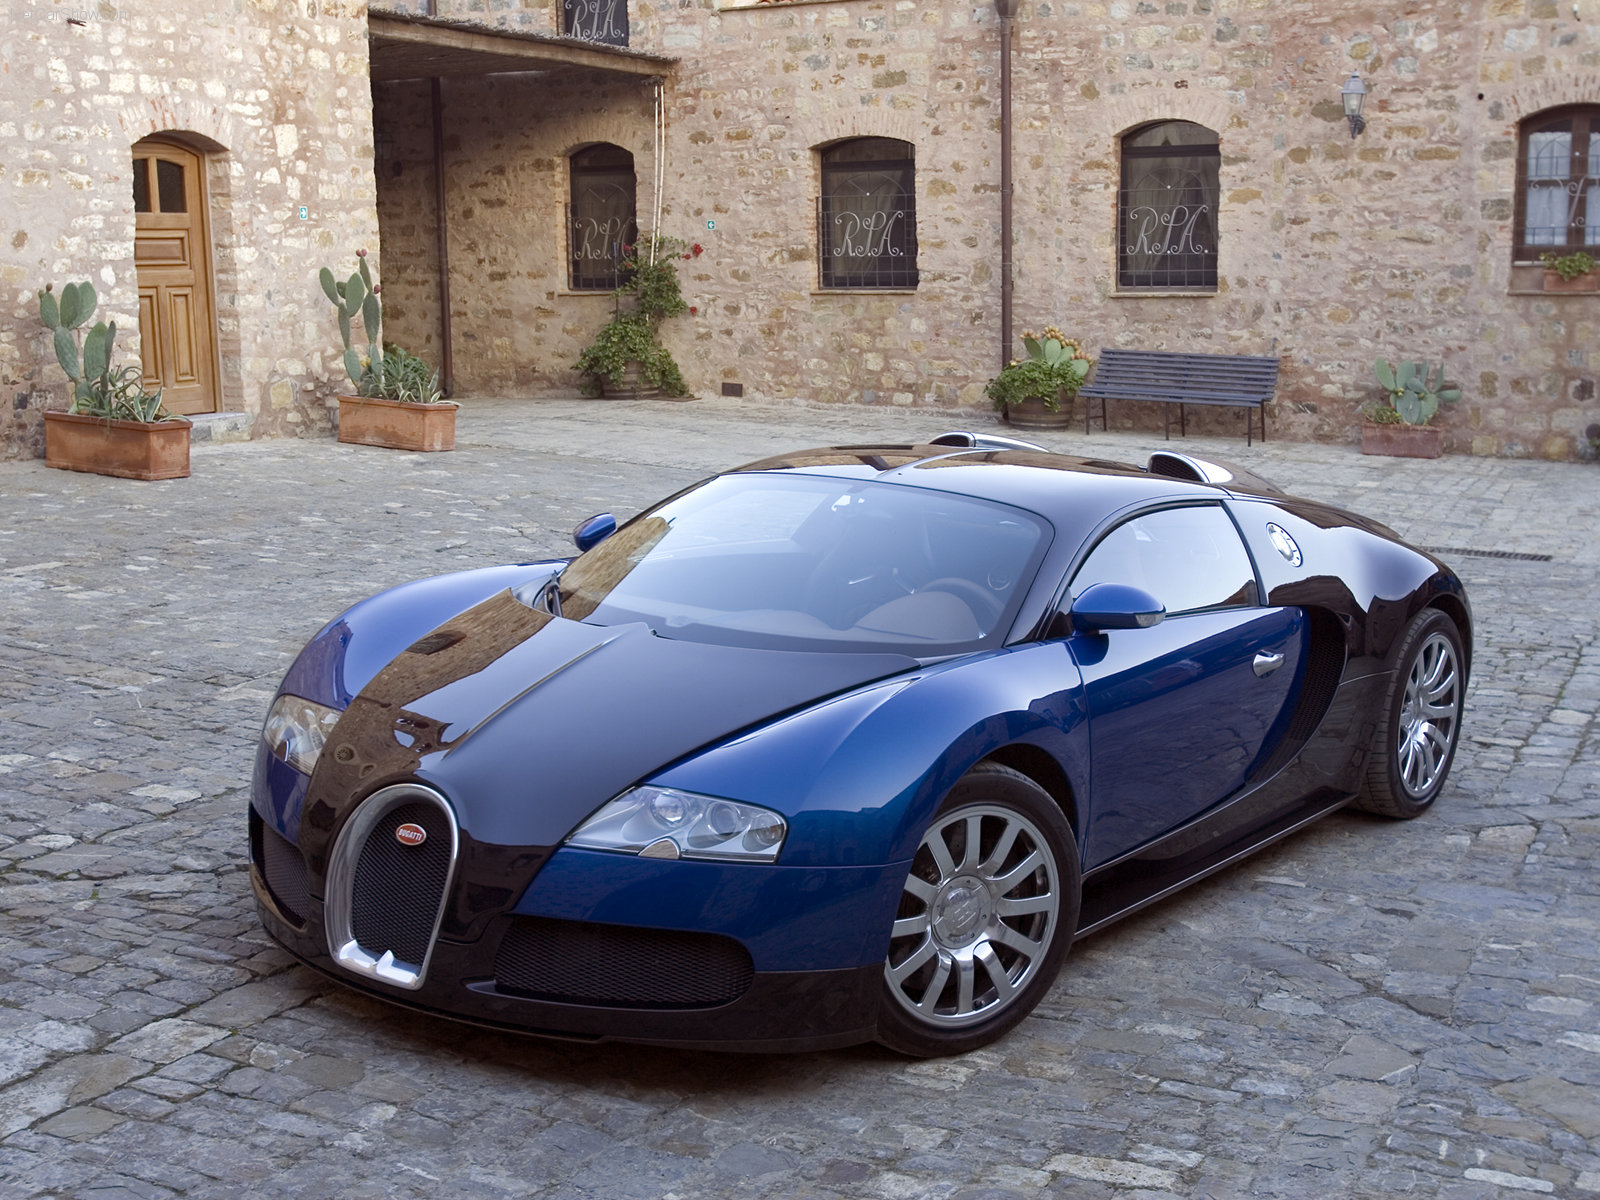 BUGATTI VEYRON HD WALLPAPERS HD WALLPAPERS 1600x1200